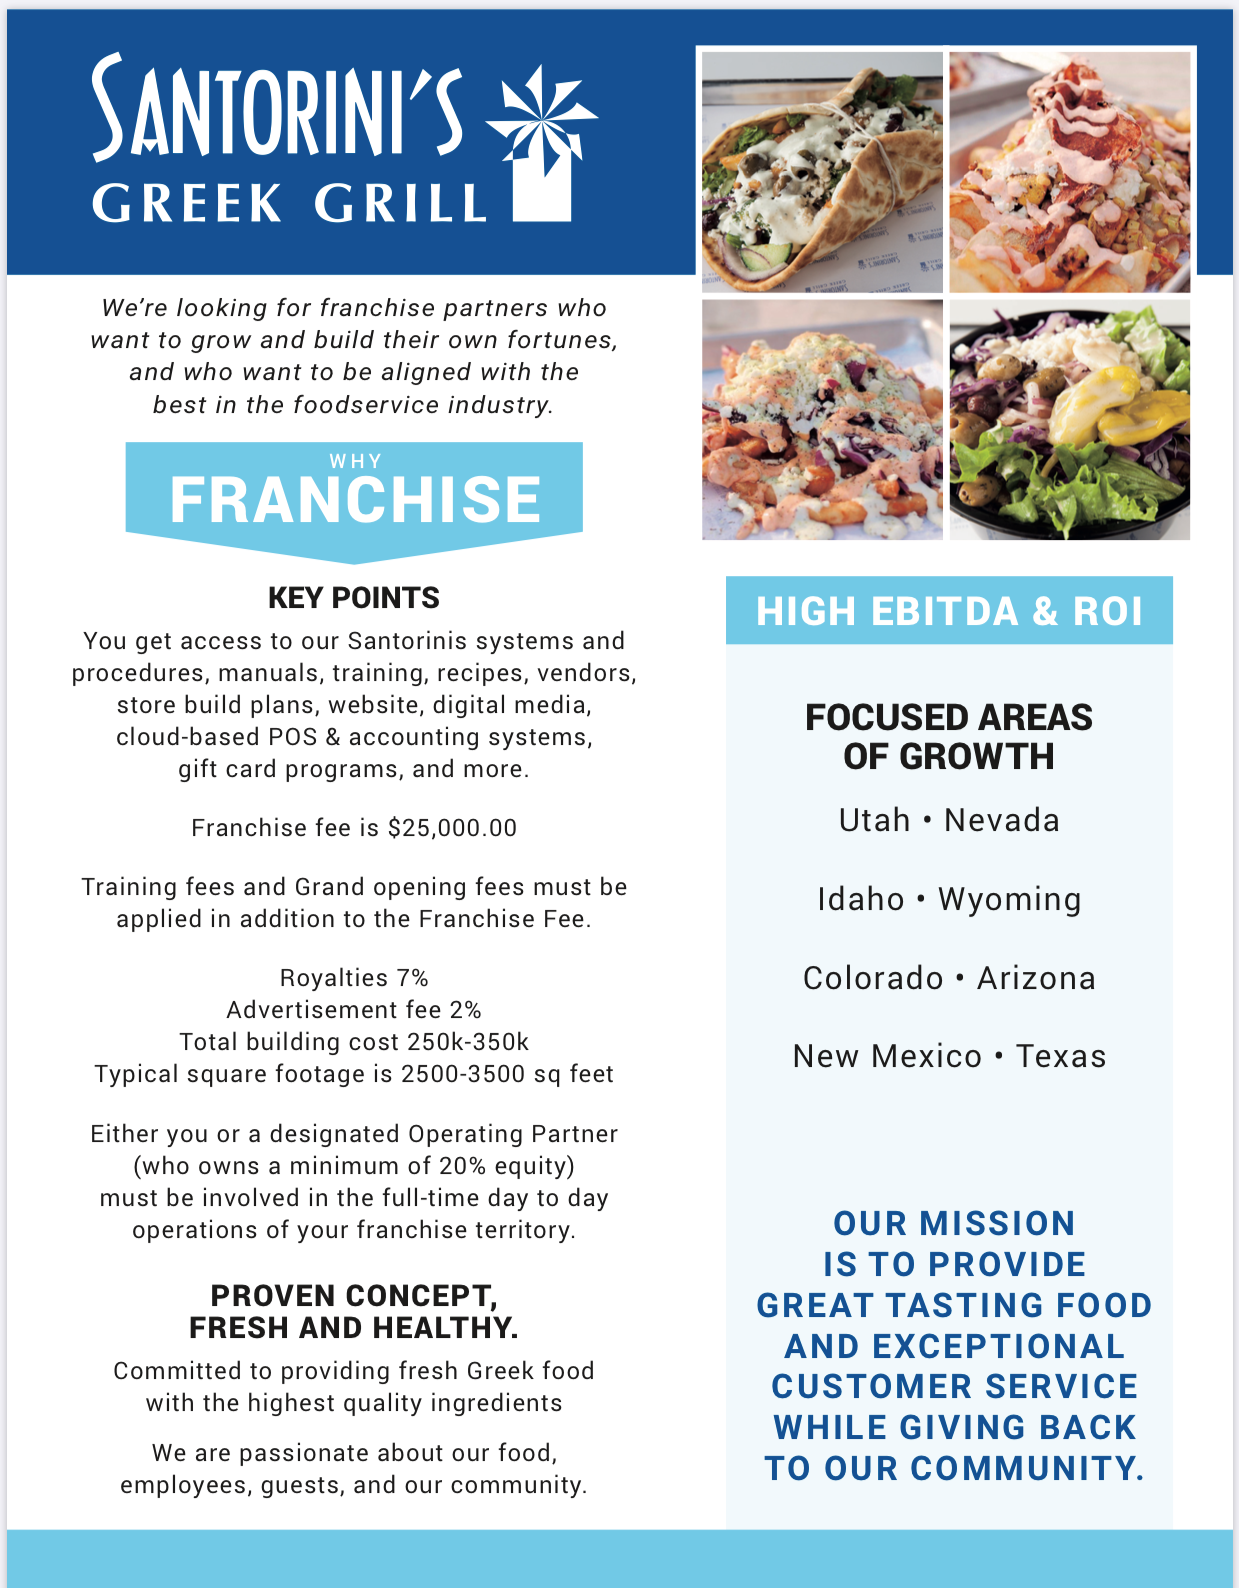 santorini's greek grill. We're looking for franchise partners who want to grow and build their own fortunes, and who want to be aligned with the best in the foodservice industry. Why franchise? key points: you get access to our Santorinis systems and procedures, manuals, training, recipes, vendors, store build plans, website, digital media, cloud-based POS & accounting systems, gift card programs, and more.  Franchise fee is $25,000.00. Training fees and Grand opening fees must be applied in addition to the Franchise Fee. Royalties 7%, Advertisement fee 2%, Total building cost 250k-350k, Typical square footage is 2500-3500 square feet. Either you or a designated Operating Partner (who owns a minimum of 20% equity) must be involved in the full-time day to day operations of your franchise territory. PROVEN CONCEPT, FRESH AND HEALTHY. Committed to providing fresh Greek food with the highest quality ingredients. We are passionate about our food, employees, guests, and our community. High EBITDA & ROI. FOCUSED AREAS OF GROWTH: Utah, Nevada, Idaho, Wyoming, Colorado, Arizona, New Mexico, Texas. Our mission is to provide great tasting food and exceptional customer service while giving back to our community.